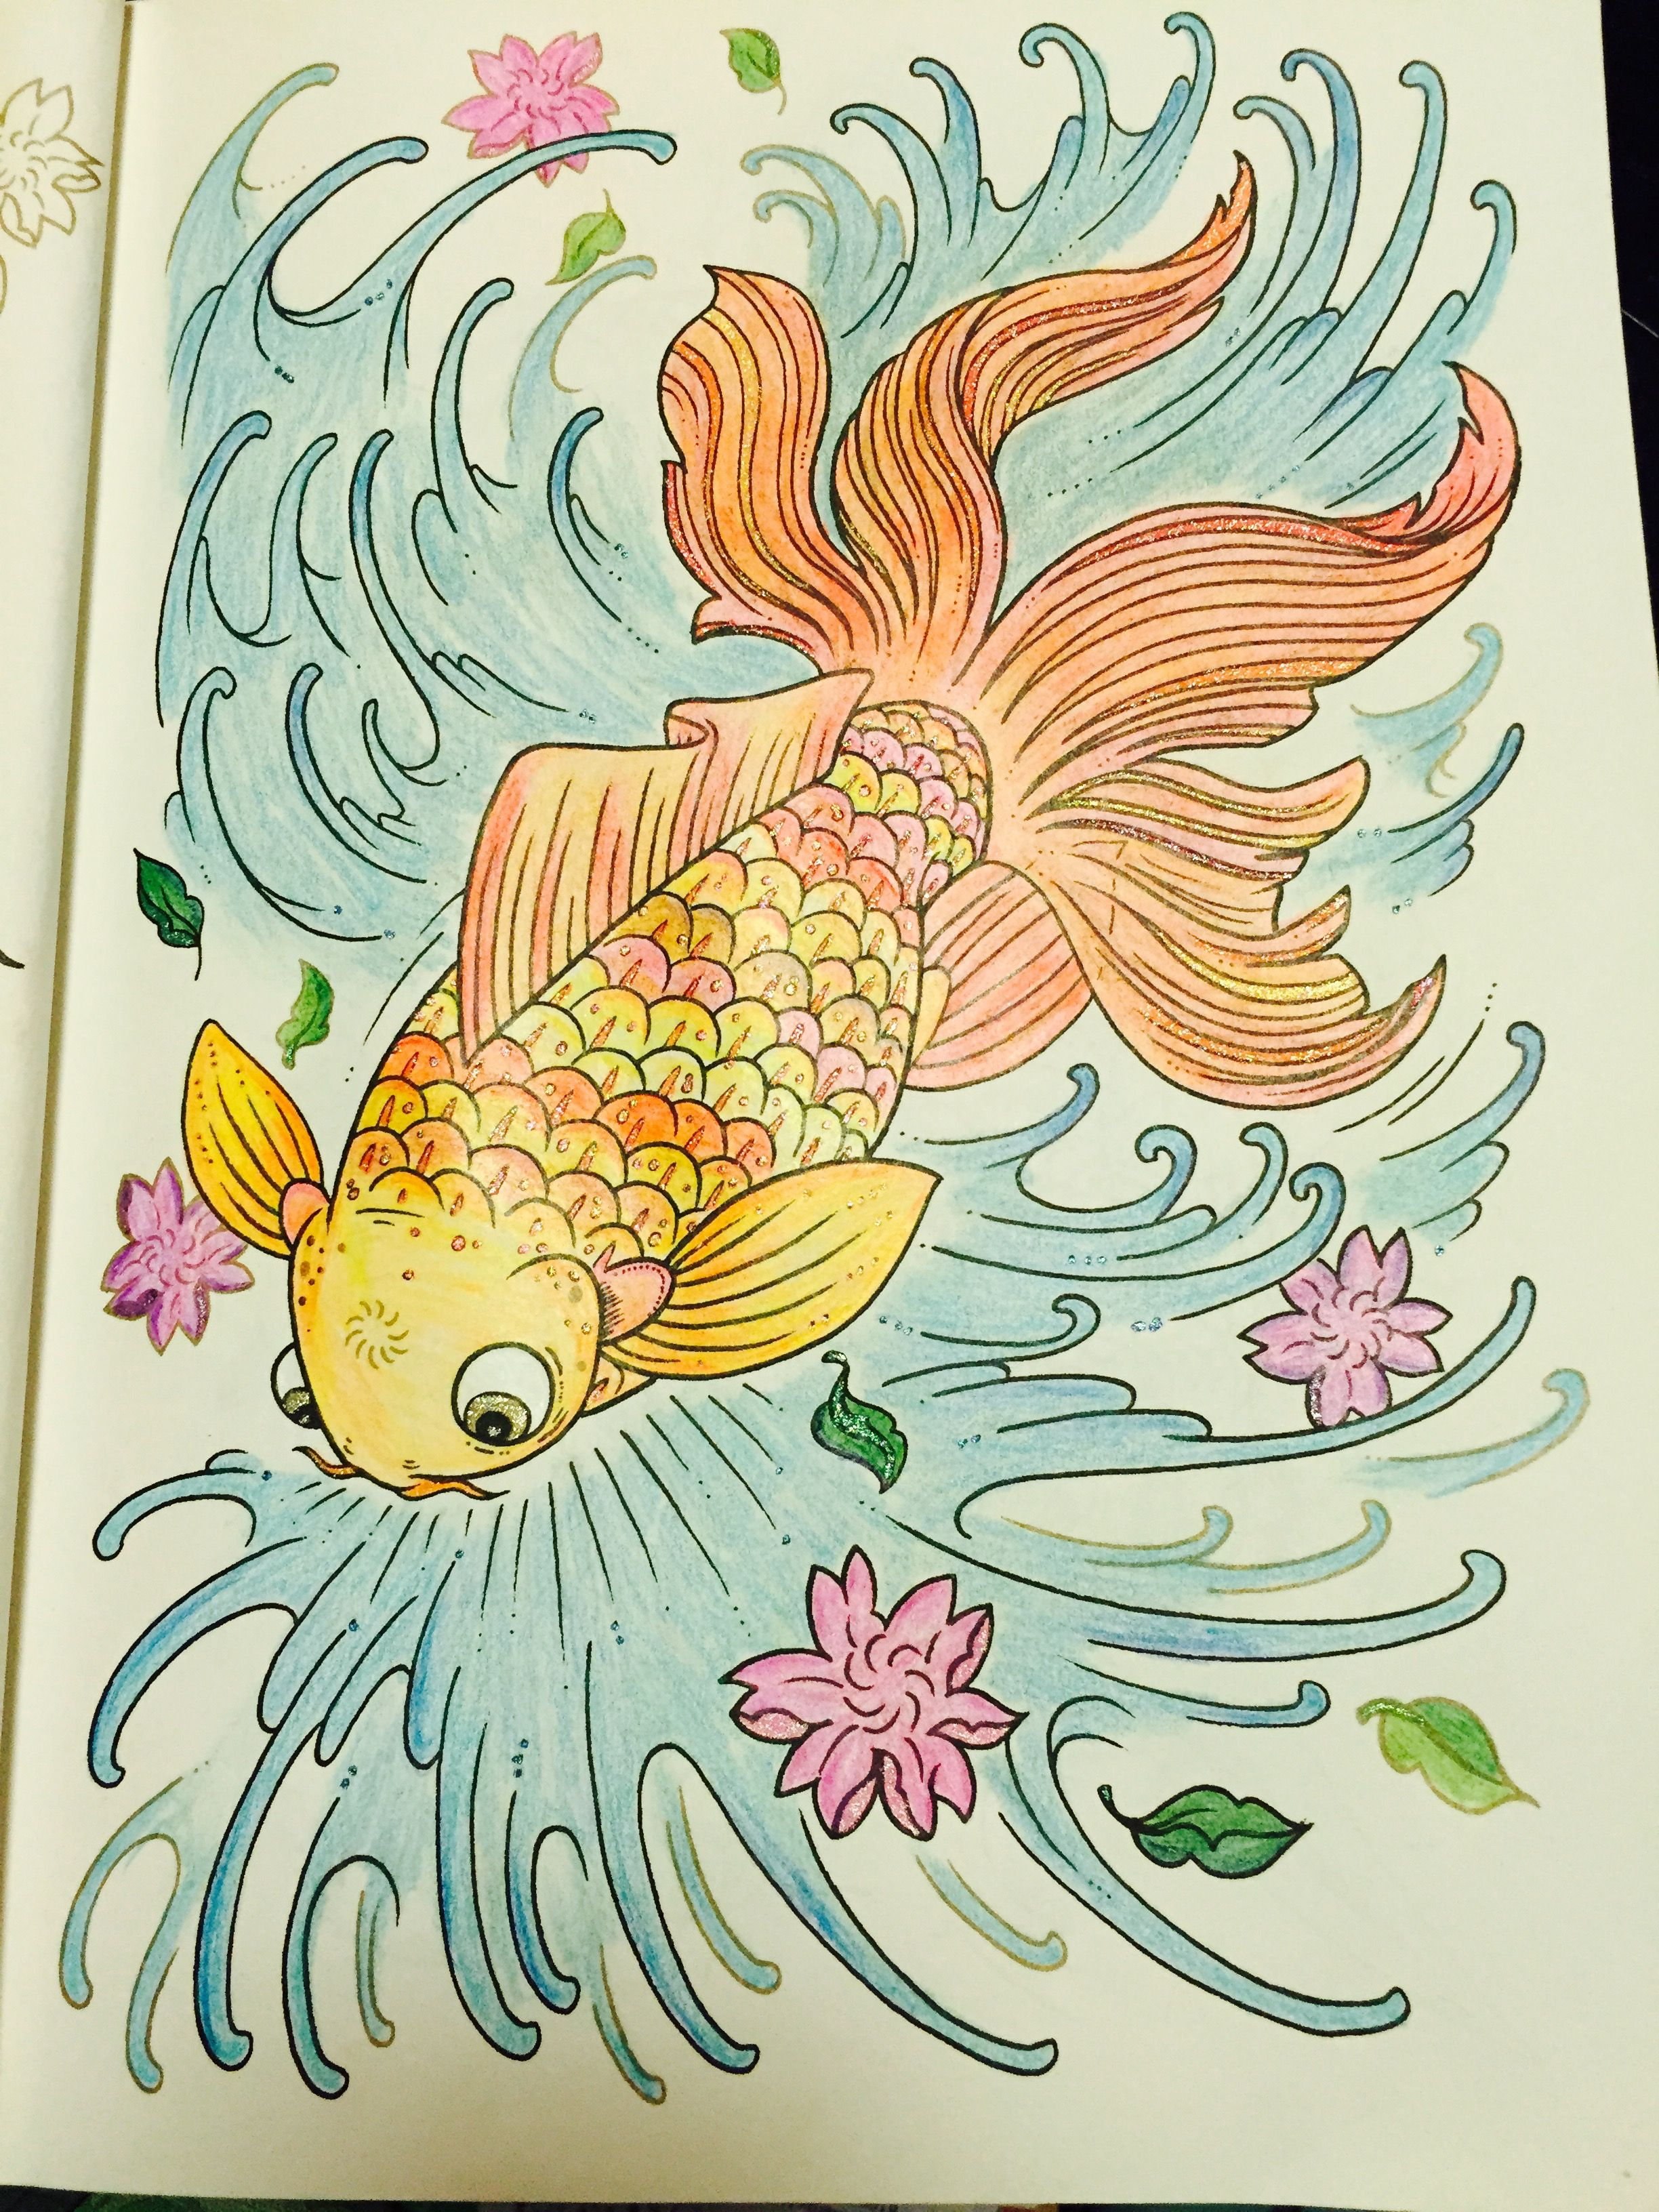 The tattoo coloring book megamunden - Koi Fish From Megamunden S Tattoo Coloring Book With Staedtler Ergosoft Pencils Just A Touch Of